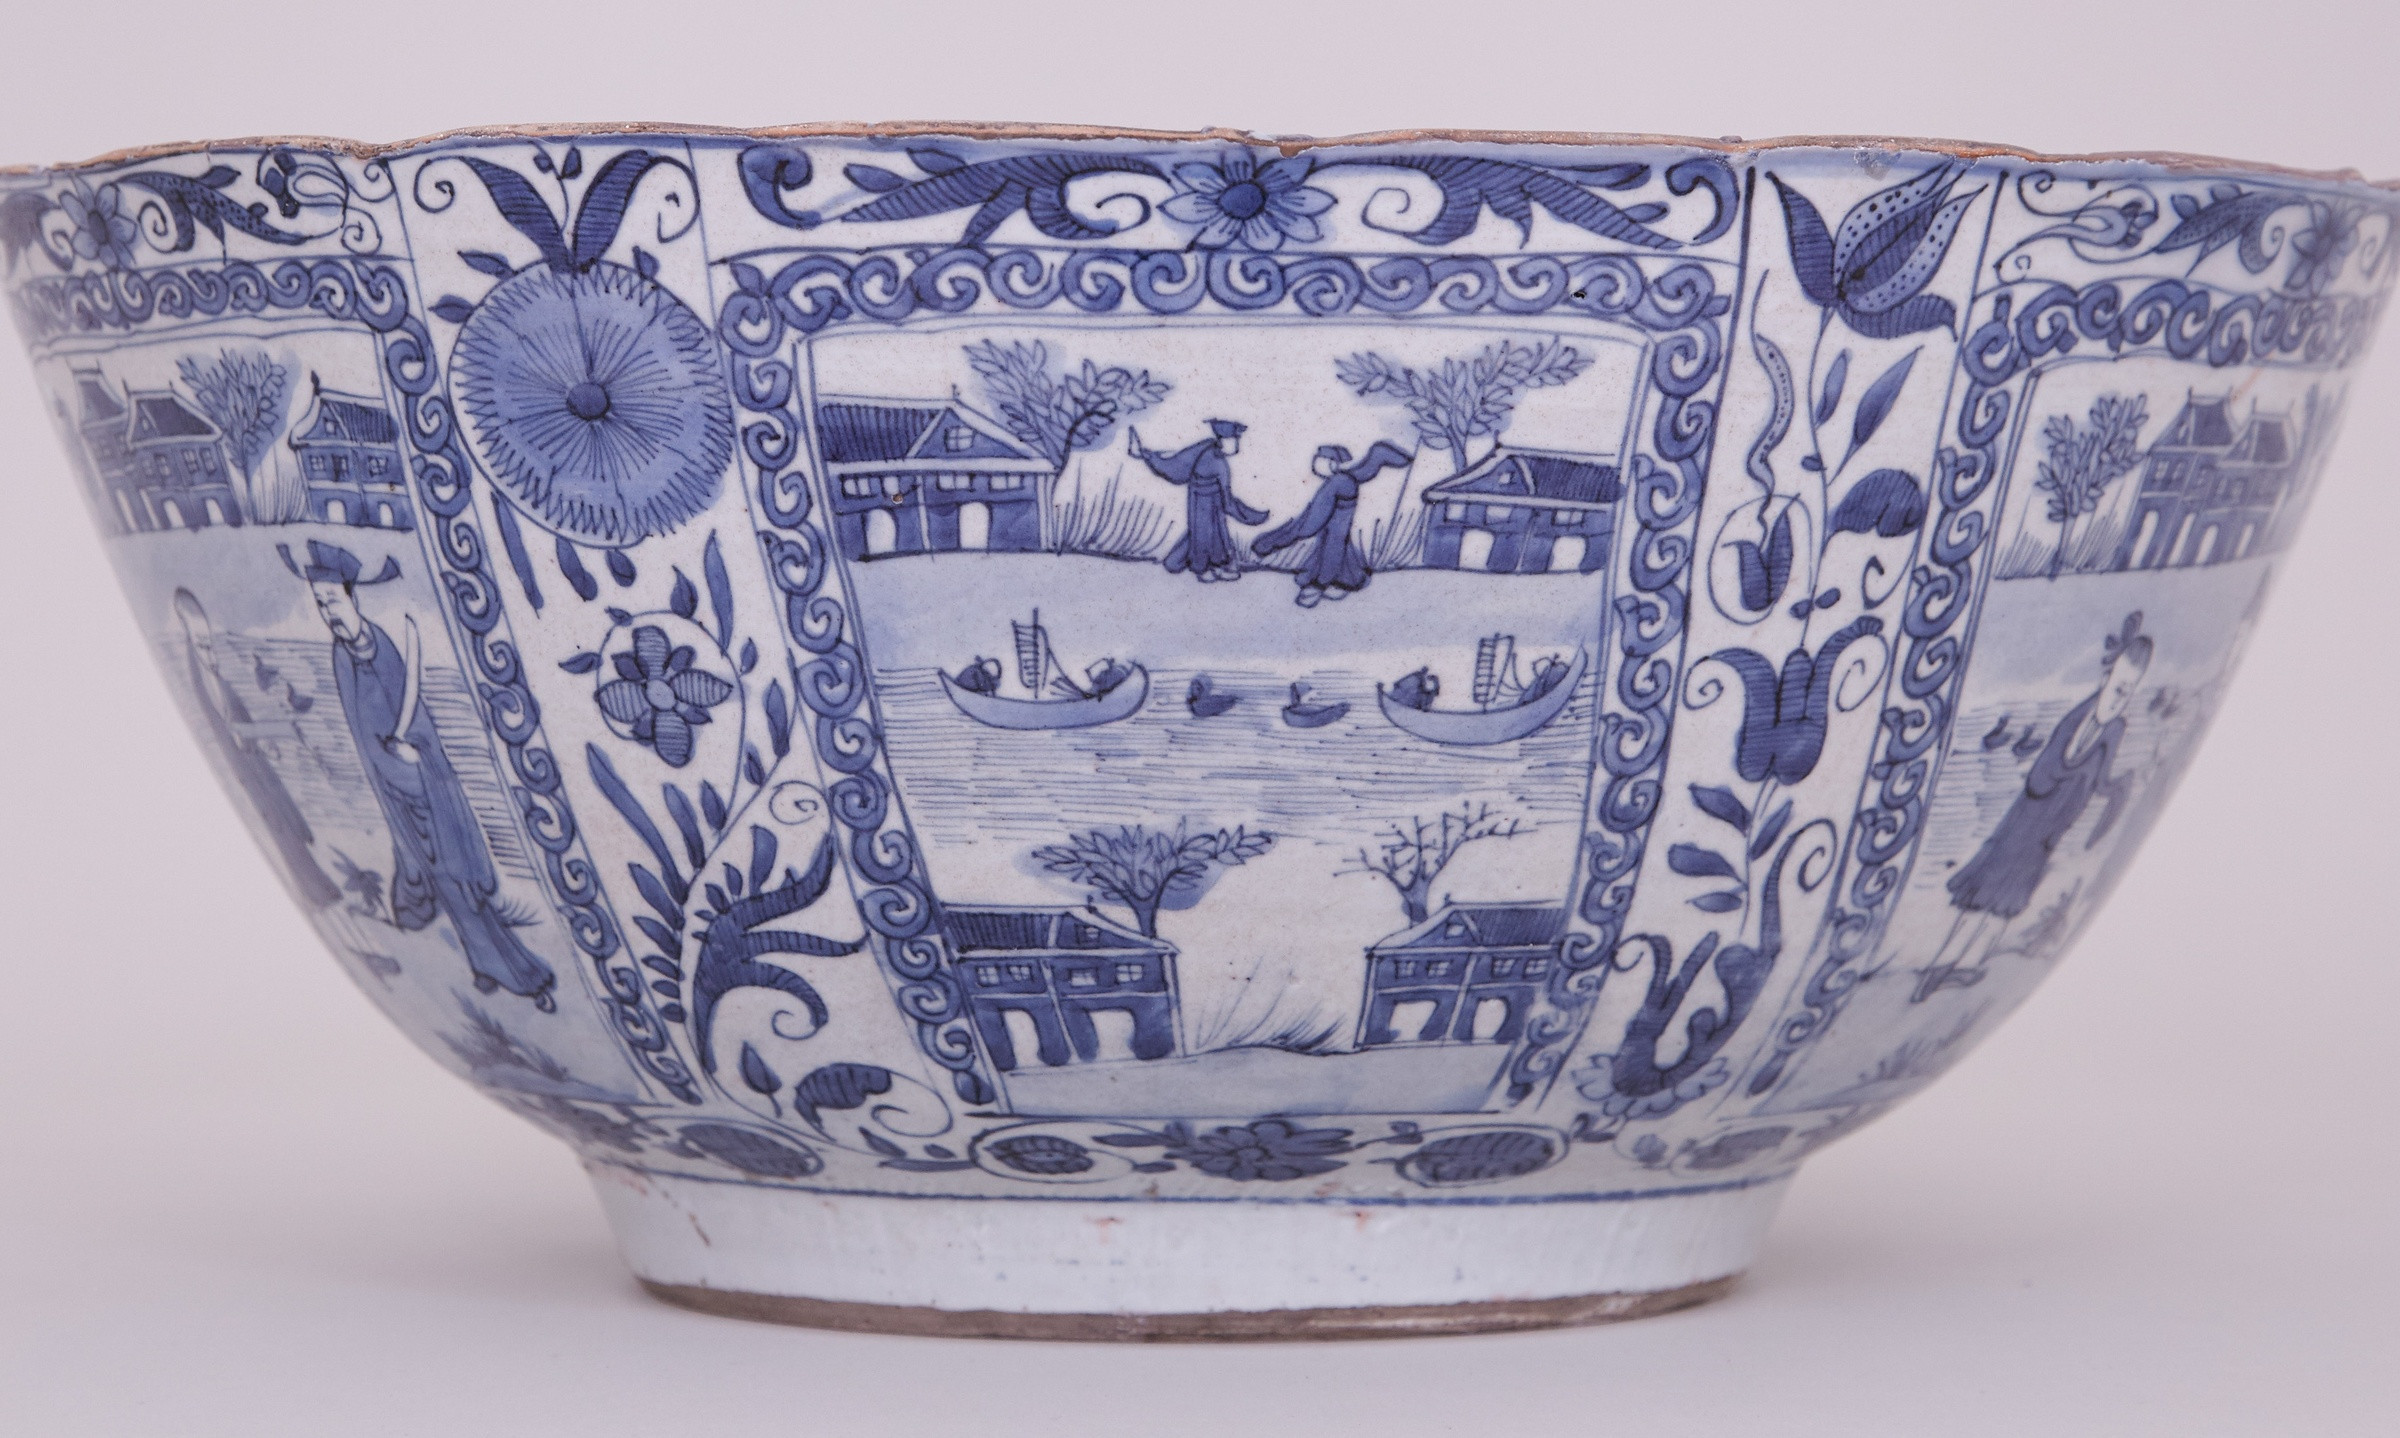 chinese vases history of a large chinese blue and white kraak bowl 1635 1650 chongzheng with regard to a large chinese blue and white kraak bowl